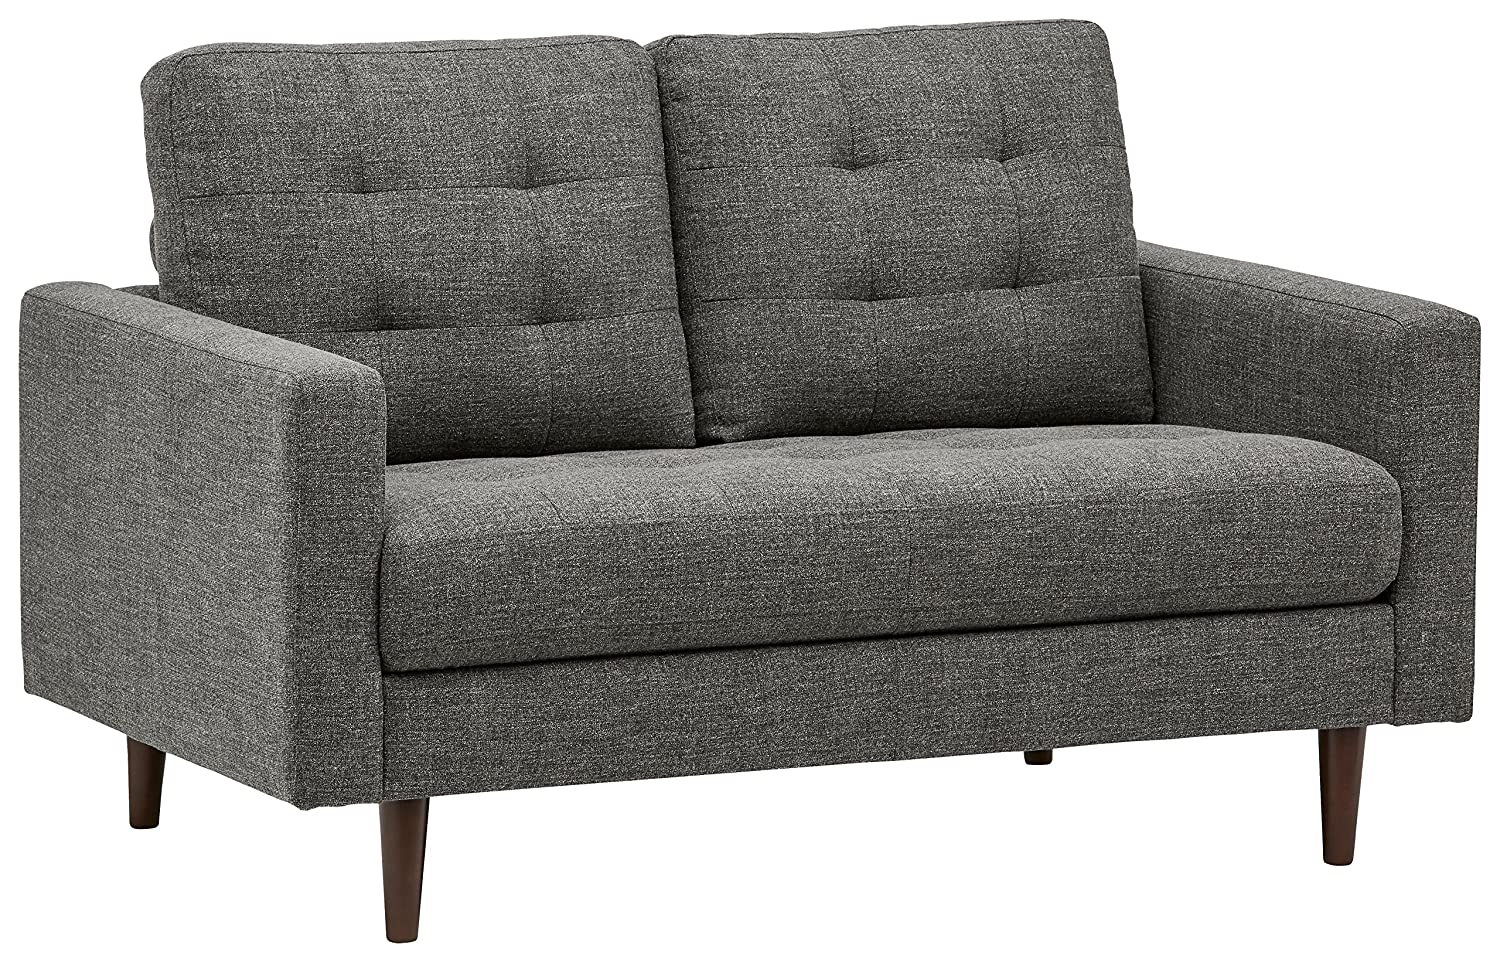 Marvelous Rivet Cove Mid Century Modern Tufted Loveseat Couch 56W Dark Grey Bralicious Painted Fabric Chair Ideas Braliciousco